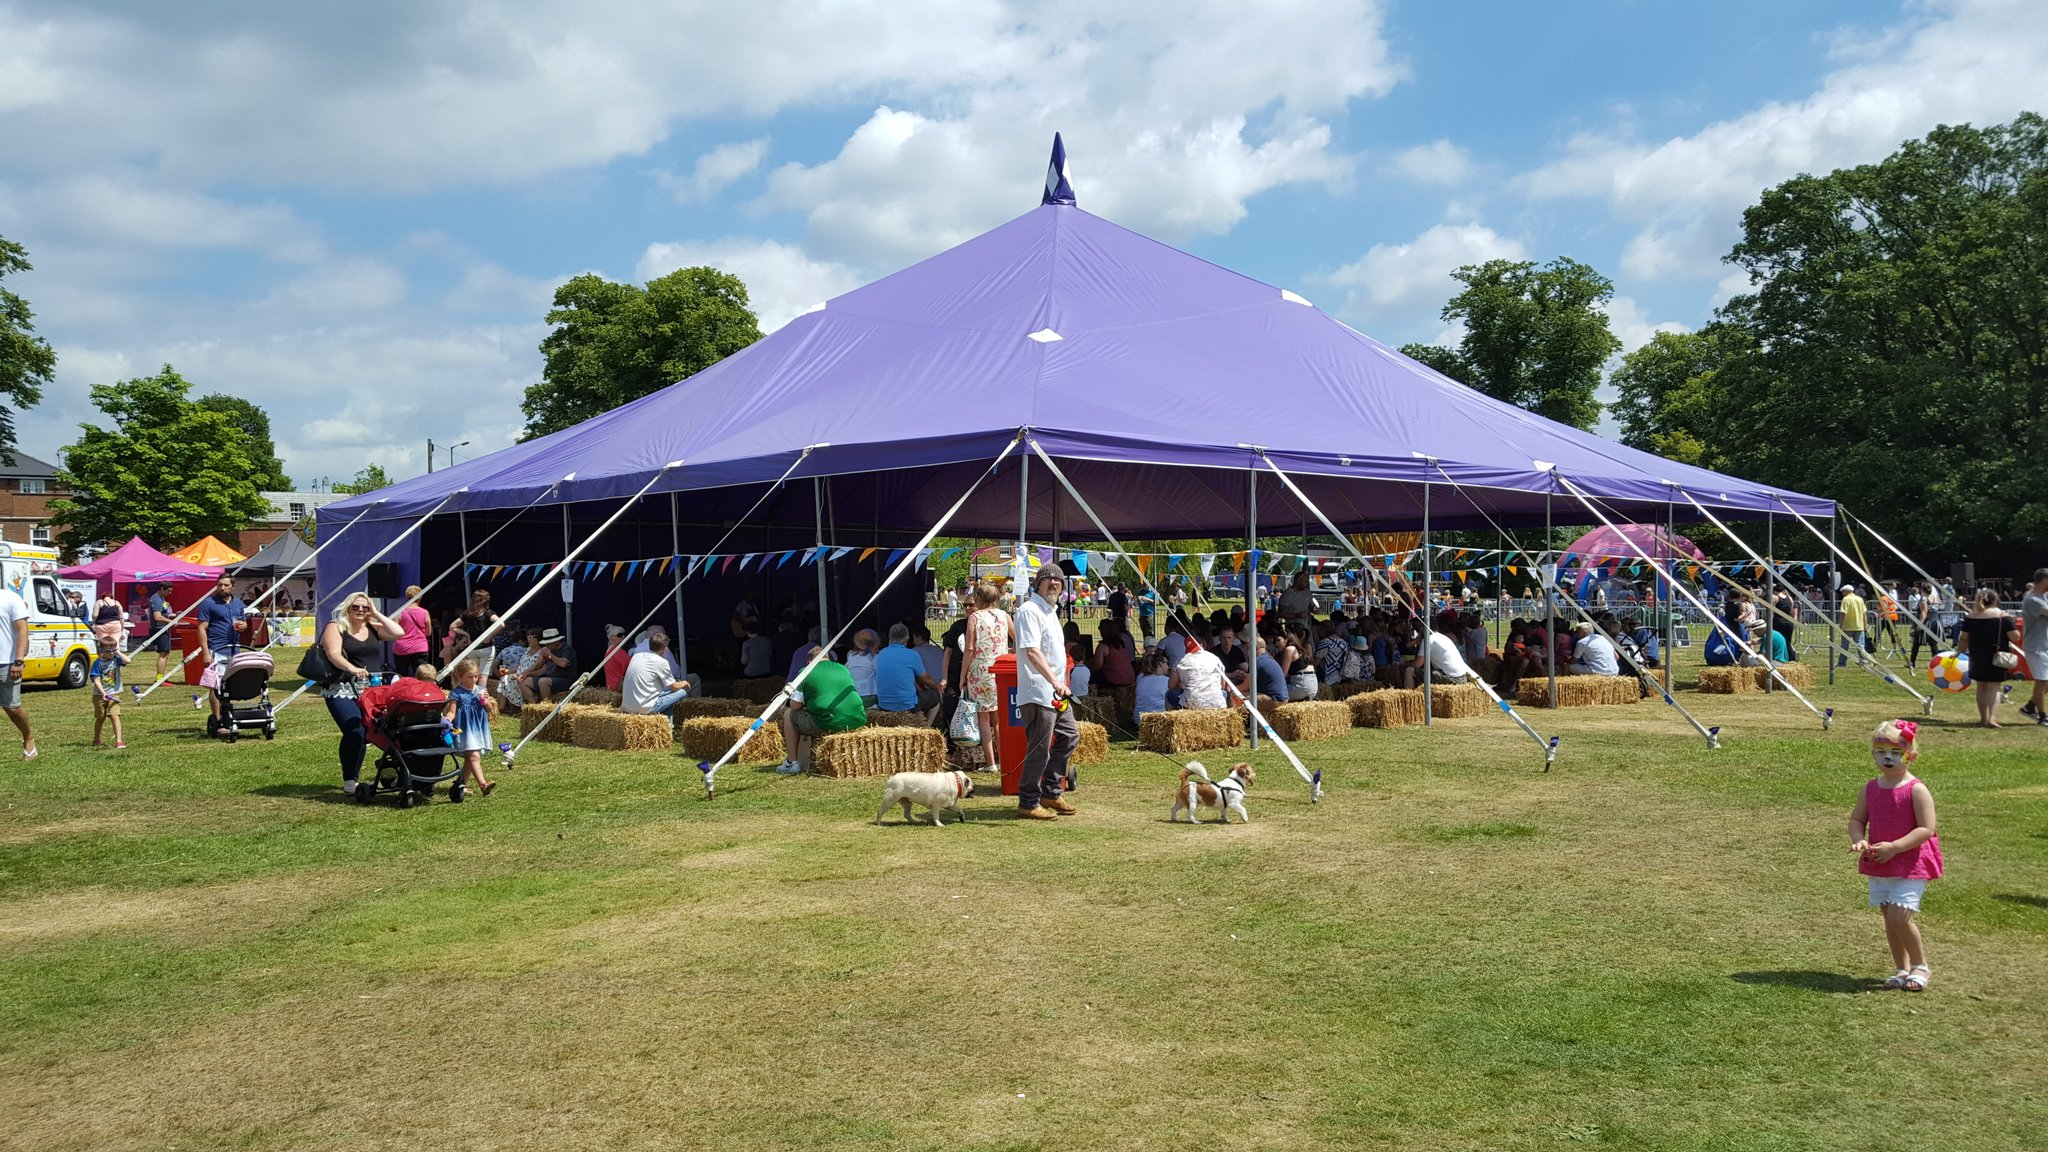 18m x 18m Big top strawberry fayre